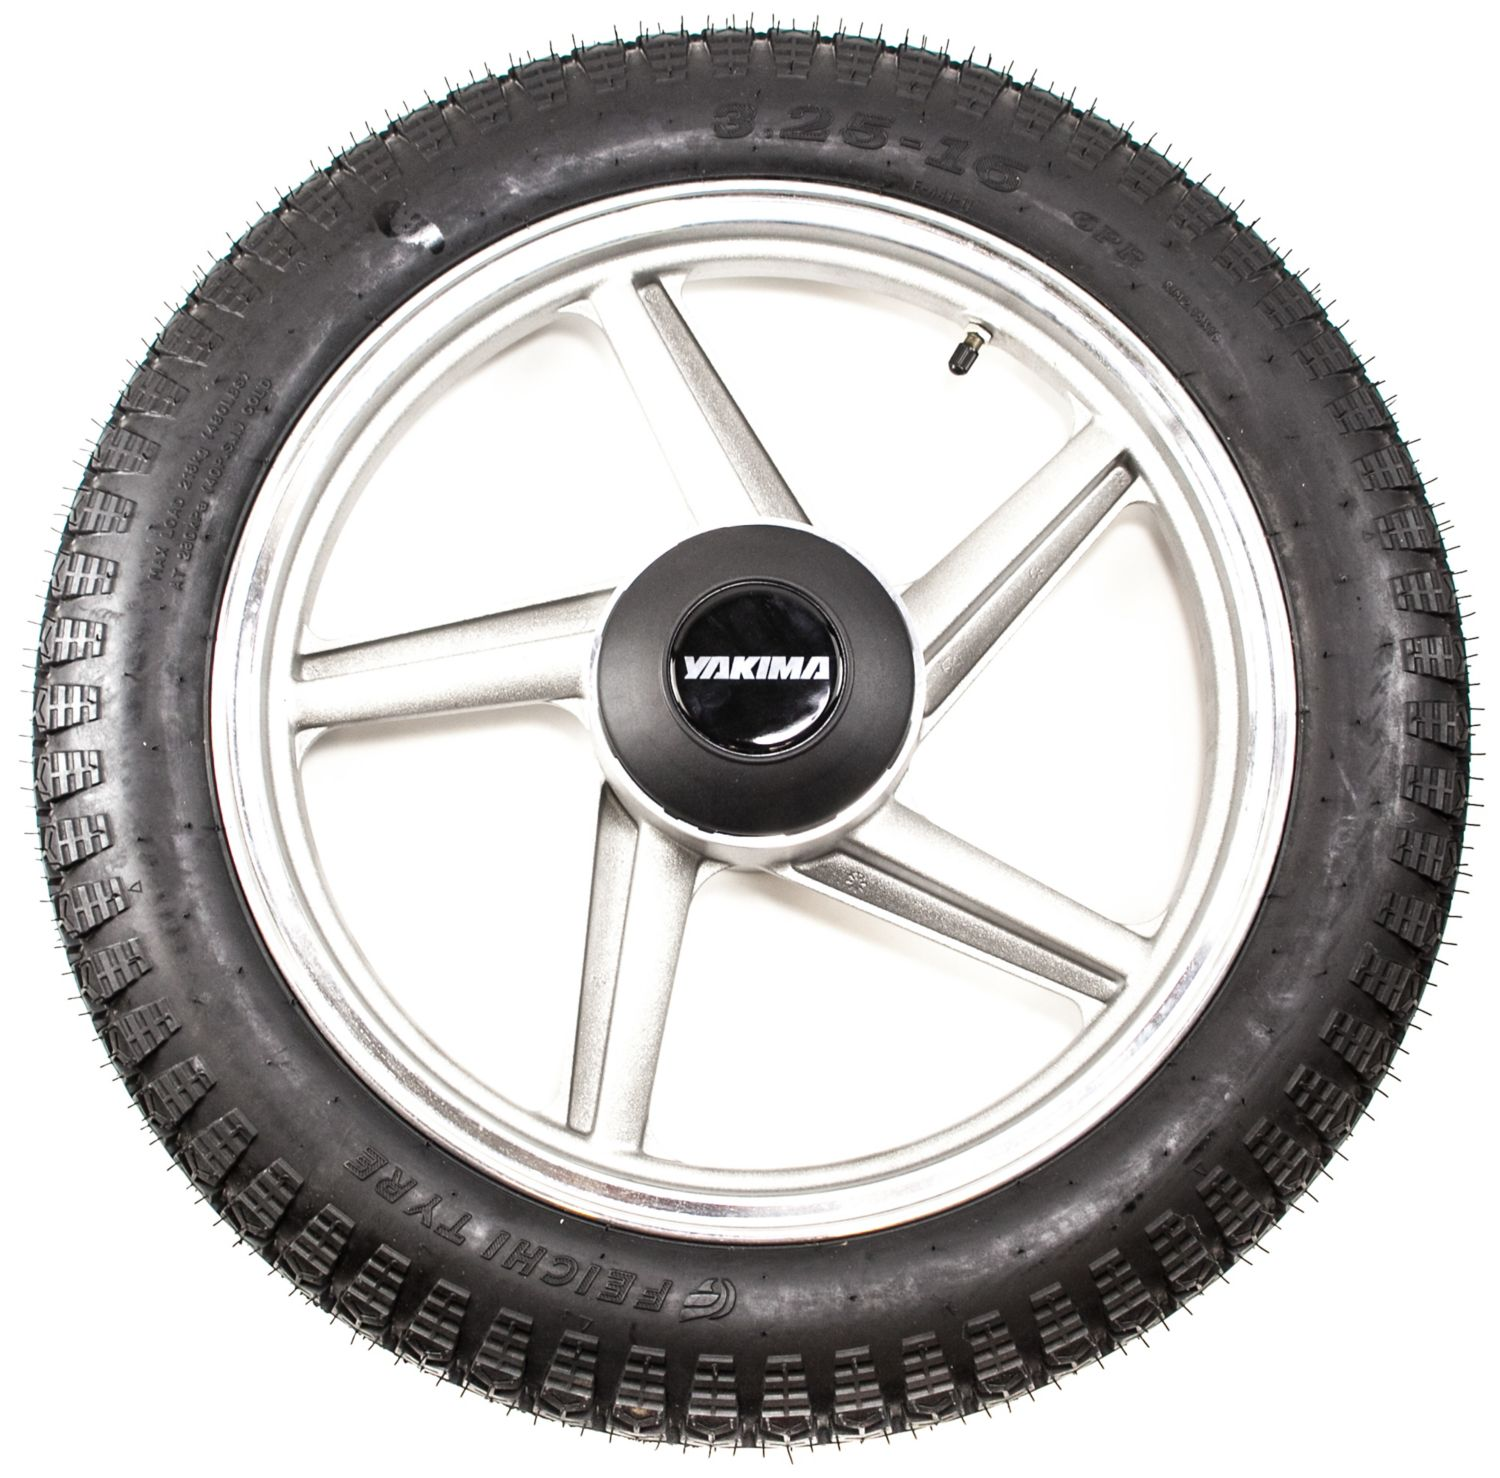 yakima rack and roll spare tire 2021